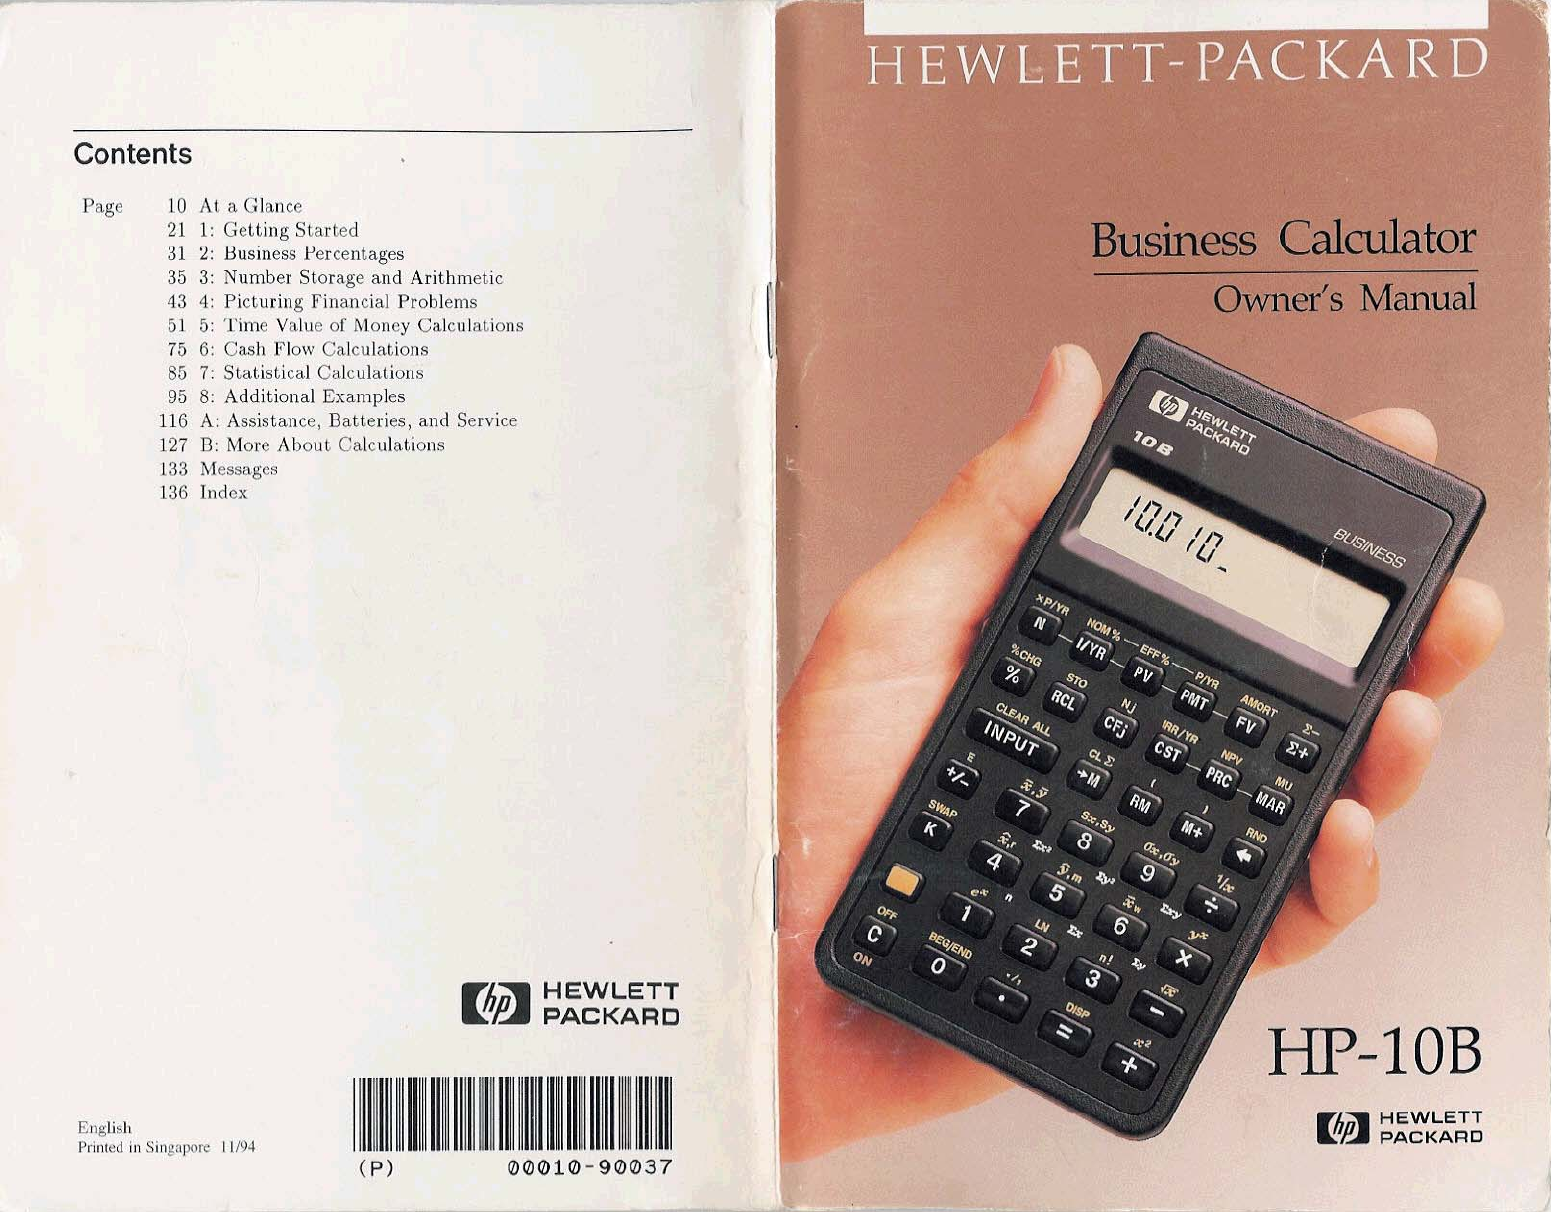 hp hewlett packard calculator hp 10b user guide manualsonline com rh office manualsonline com hp 10bii financial calculator user guide hp 10bii user manual